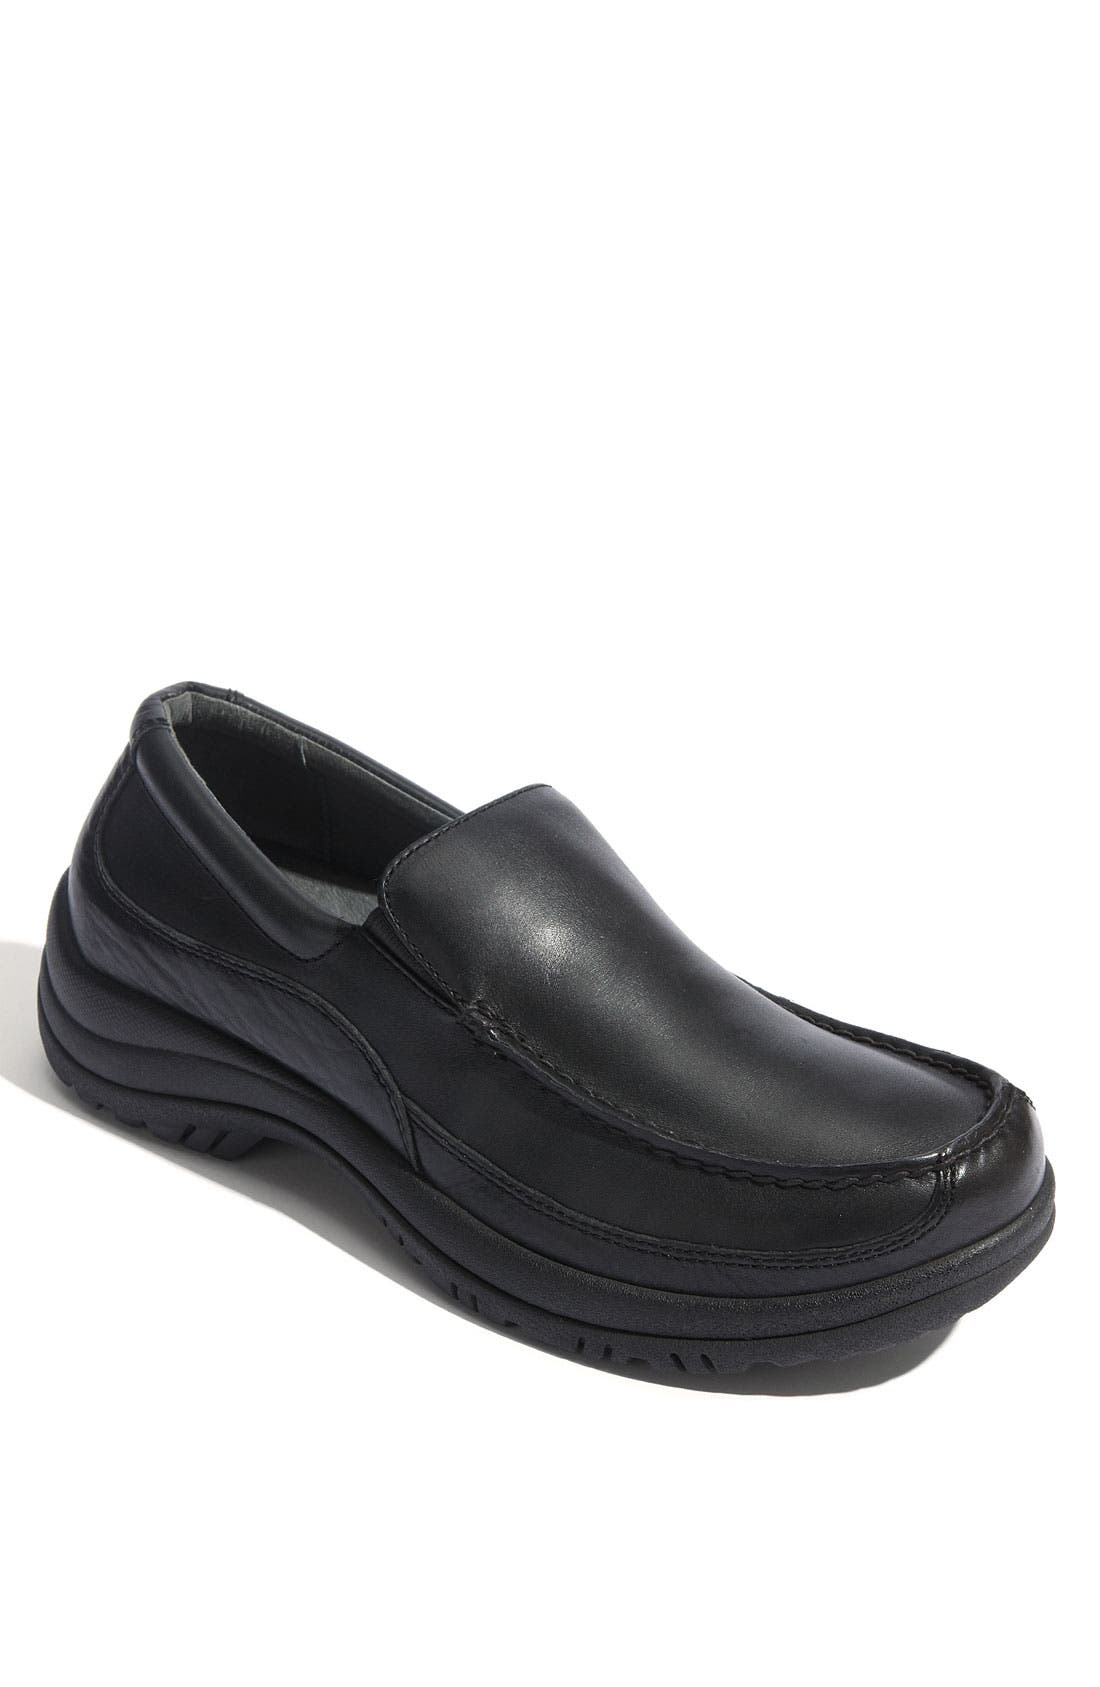 'Wayne' Slip-On,                         Main,                         color, Black